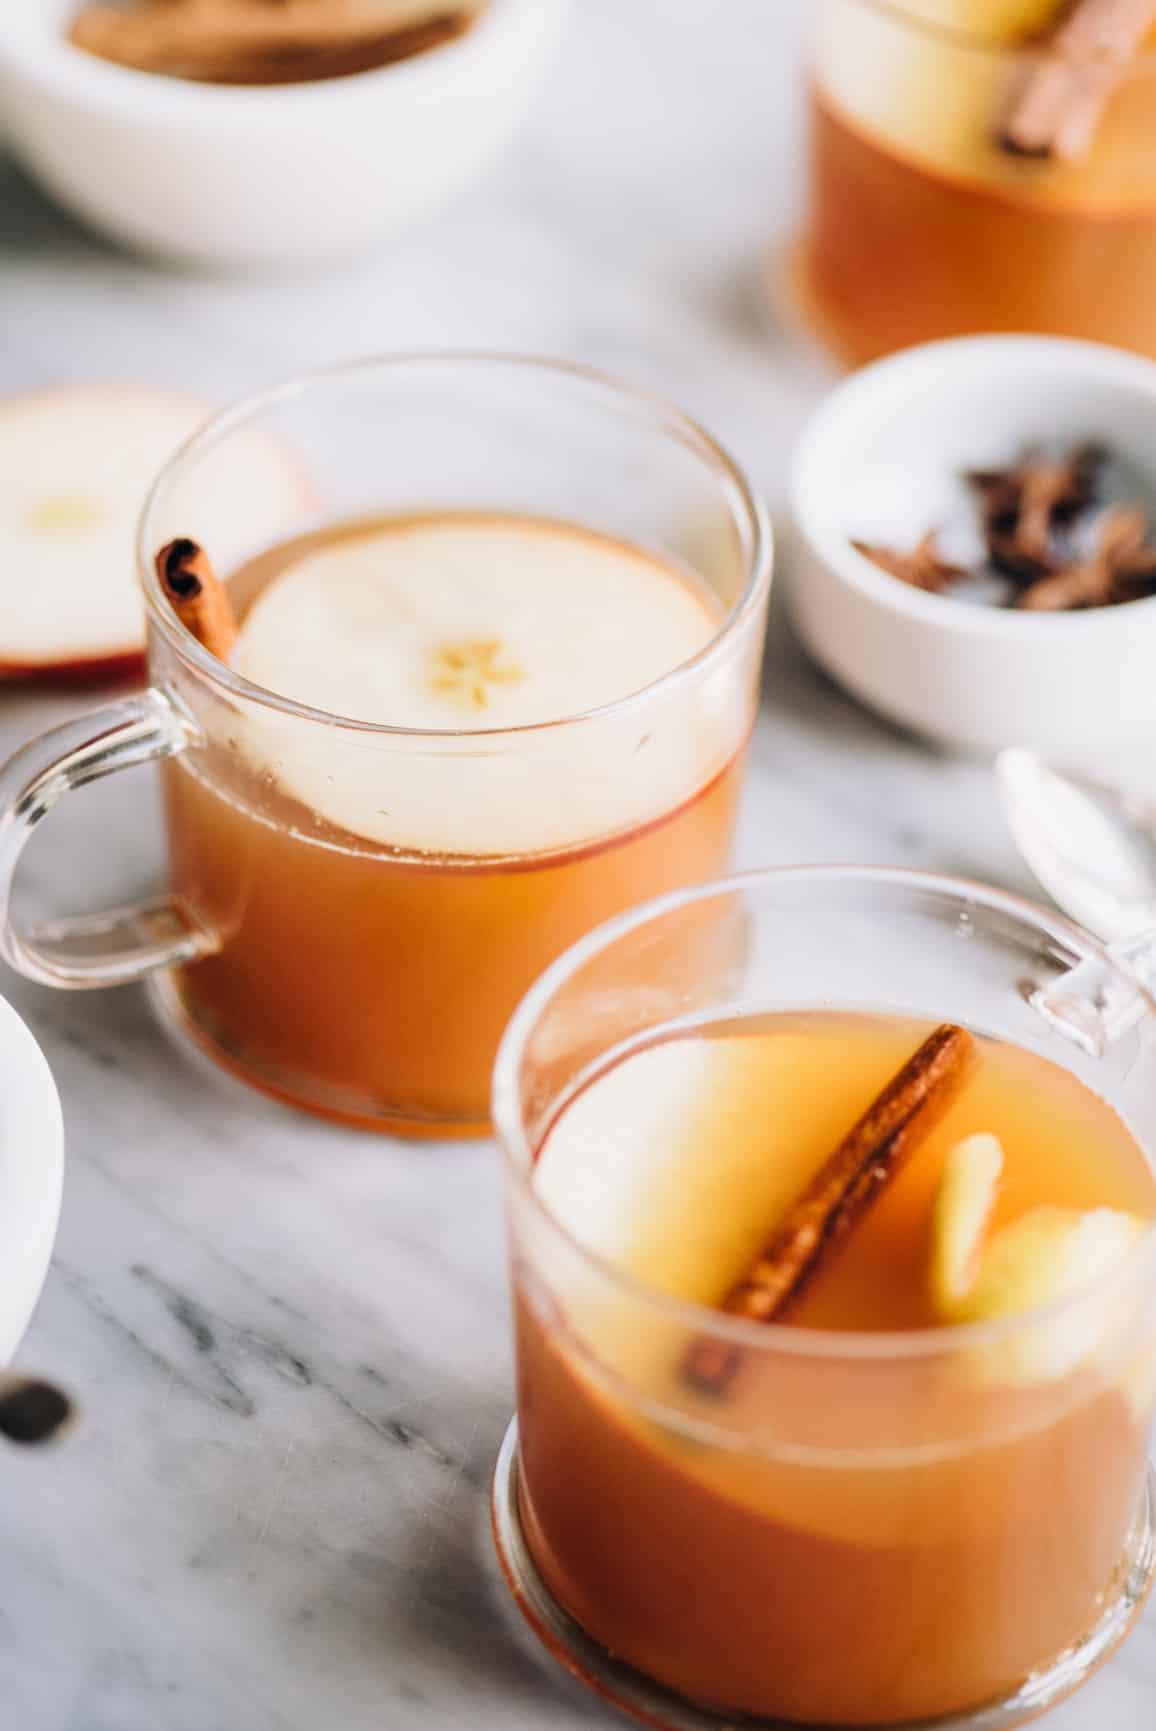 Looking for a holiday cocktail recipe to indulge in or serve guests at holiday parties? This warm and cozy Apple Cider Hot Toddy is perfect for sipping on at the dinner table or by the fire this Thanksgiving and Christmas. (Click here for the recipe!)